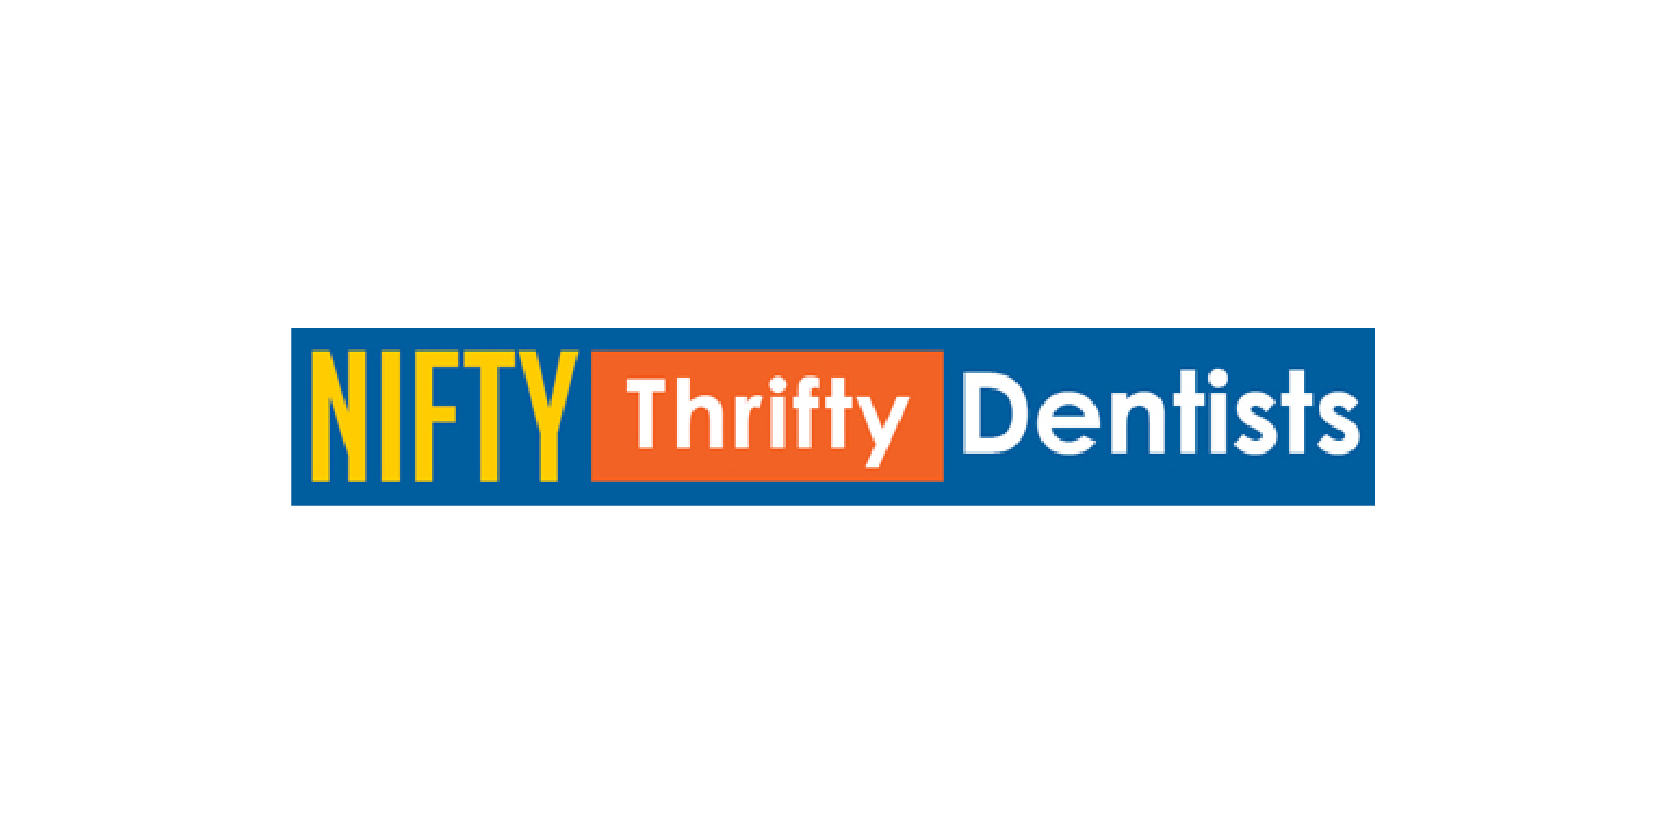 - Nifty Thrifty Dentists is a community of dental professionals who work together to keep overhead costs low. With over 17,000 dentists, we bring group rates to products and services needed in a dental office and provide support and encouragement to one another as we better the profession.